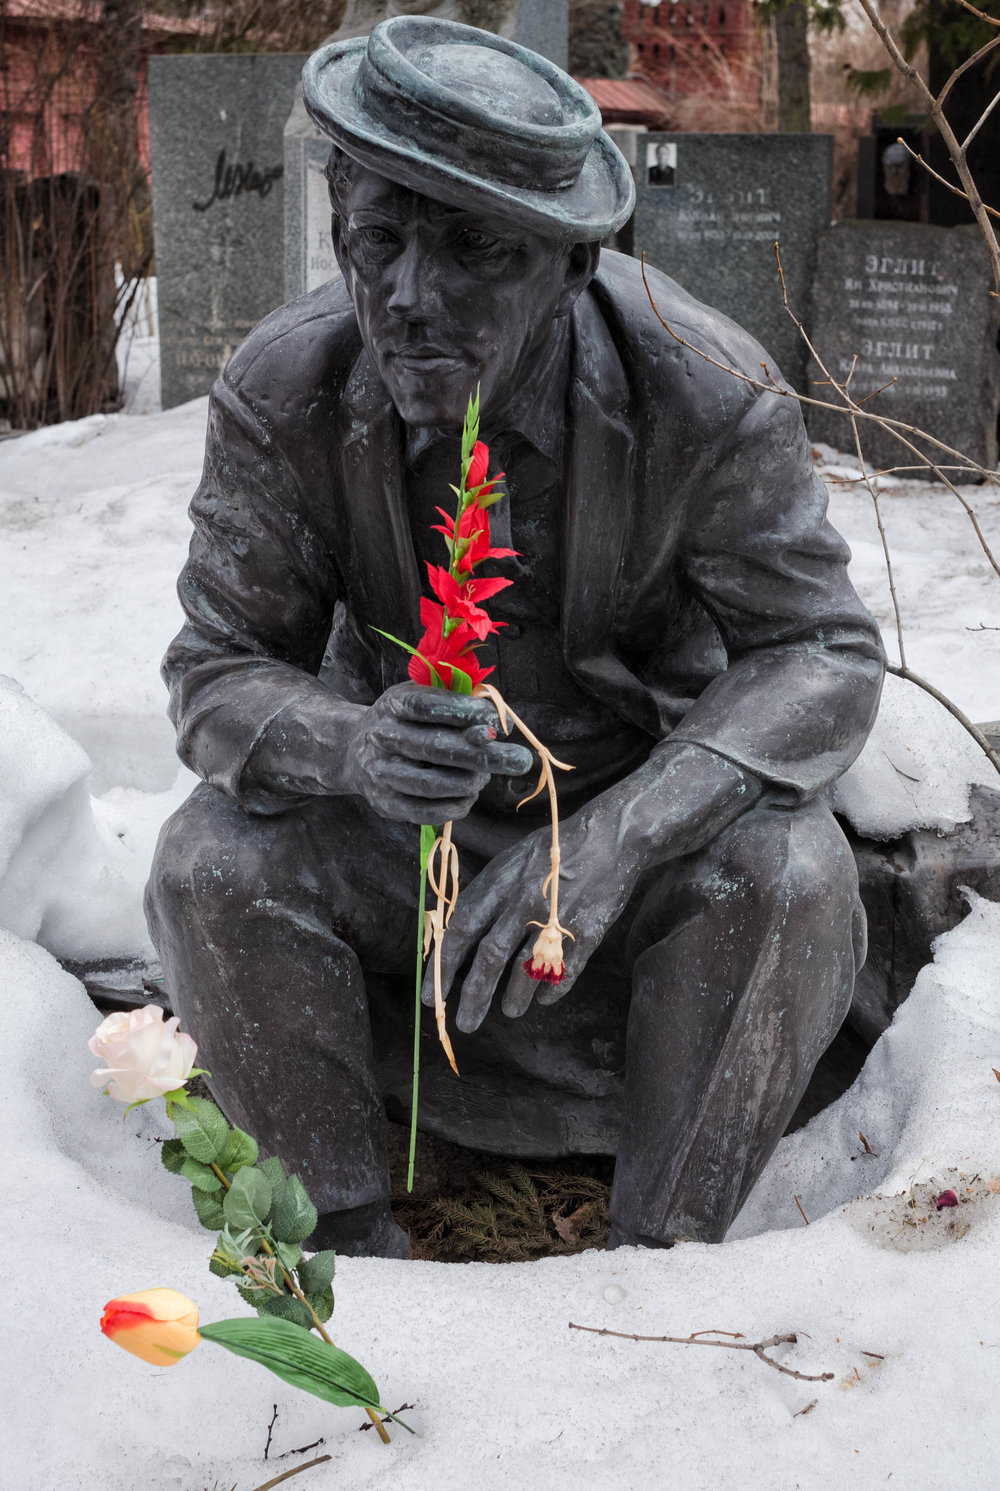 23 Russia March-April 2018 Novodevichy Cemetery 12-.jpg